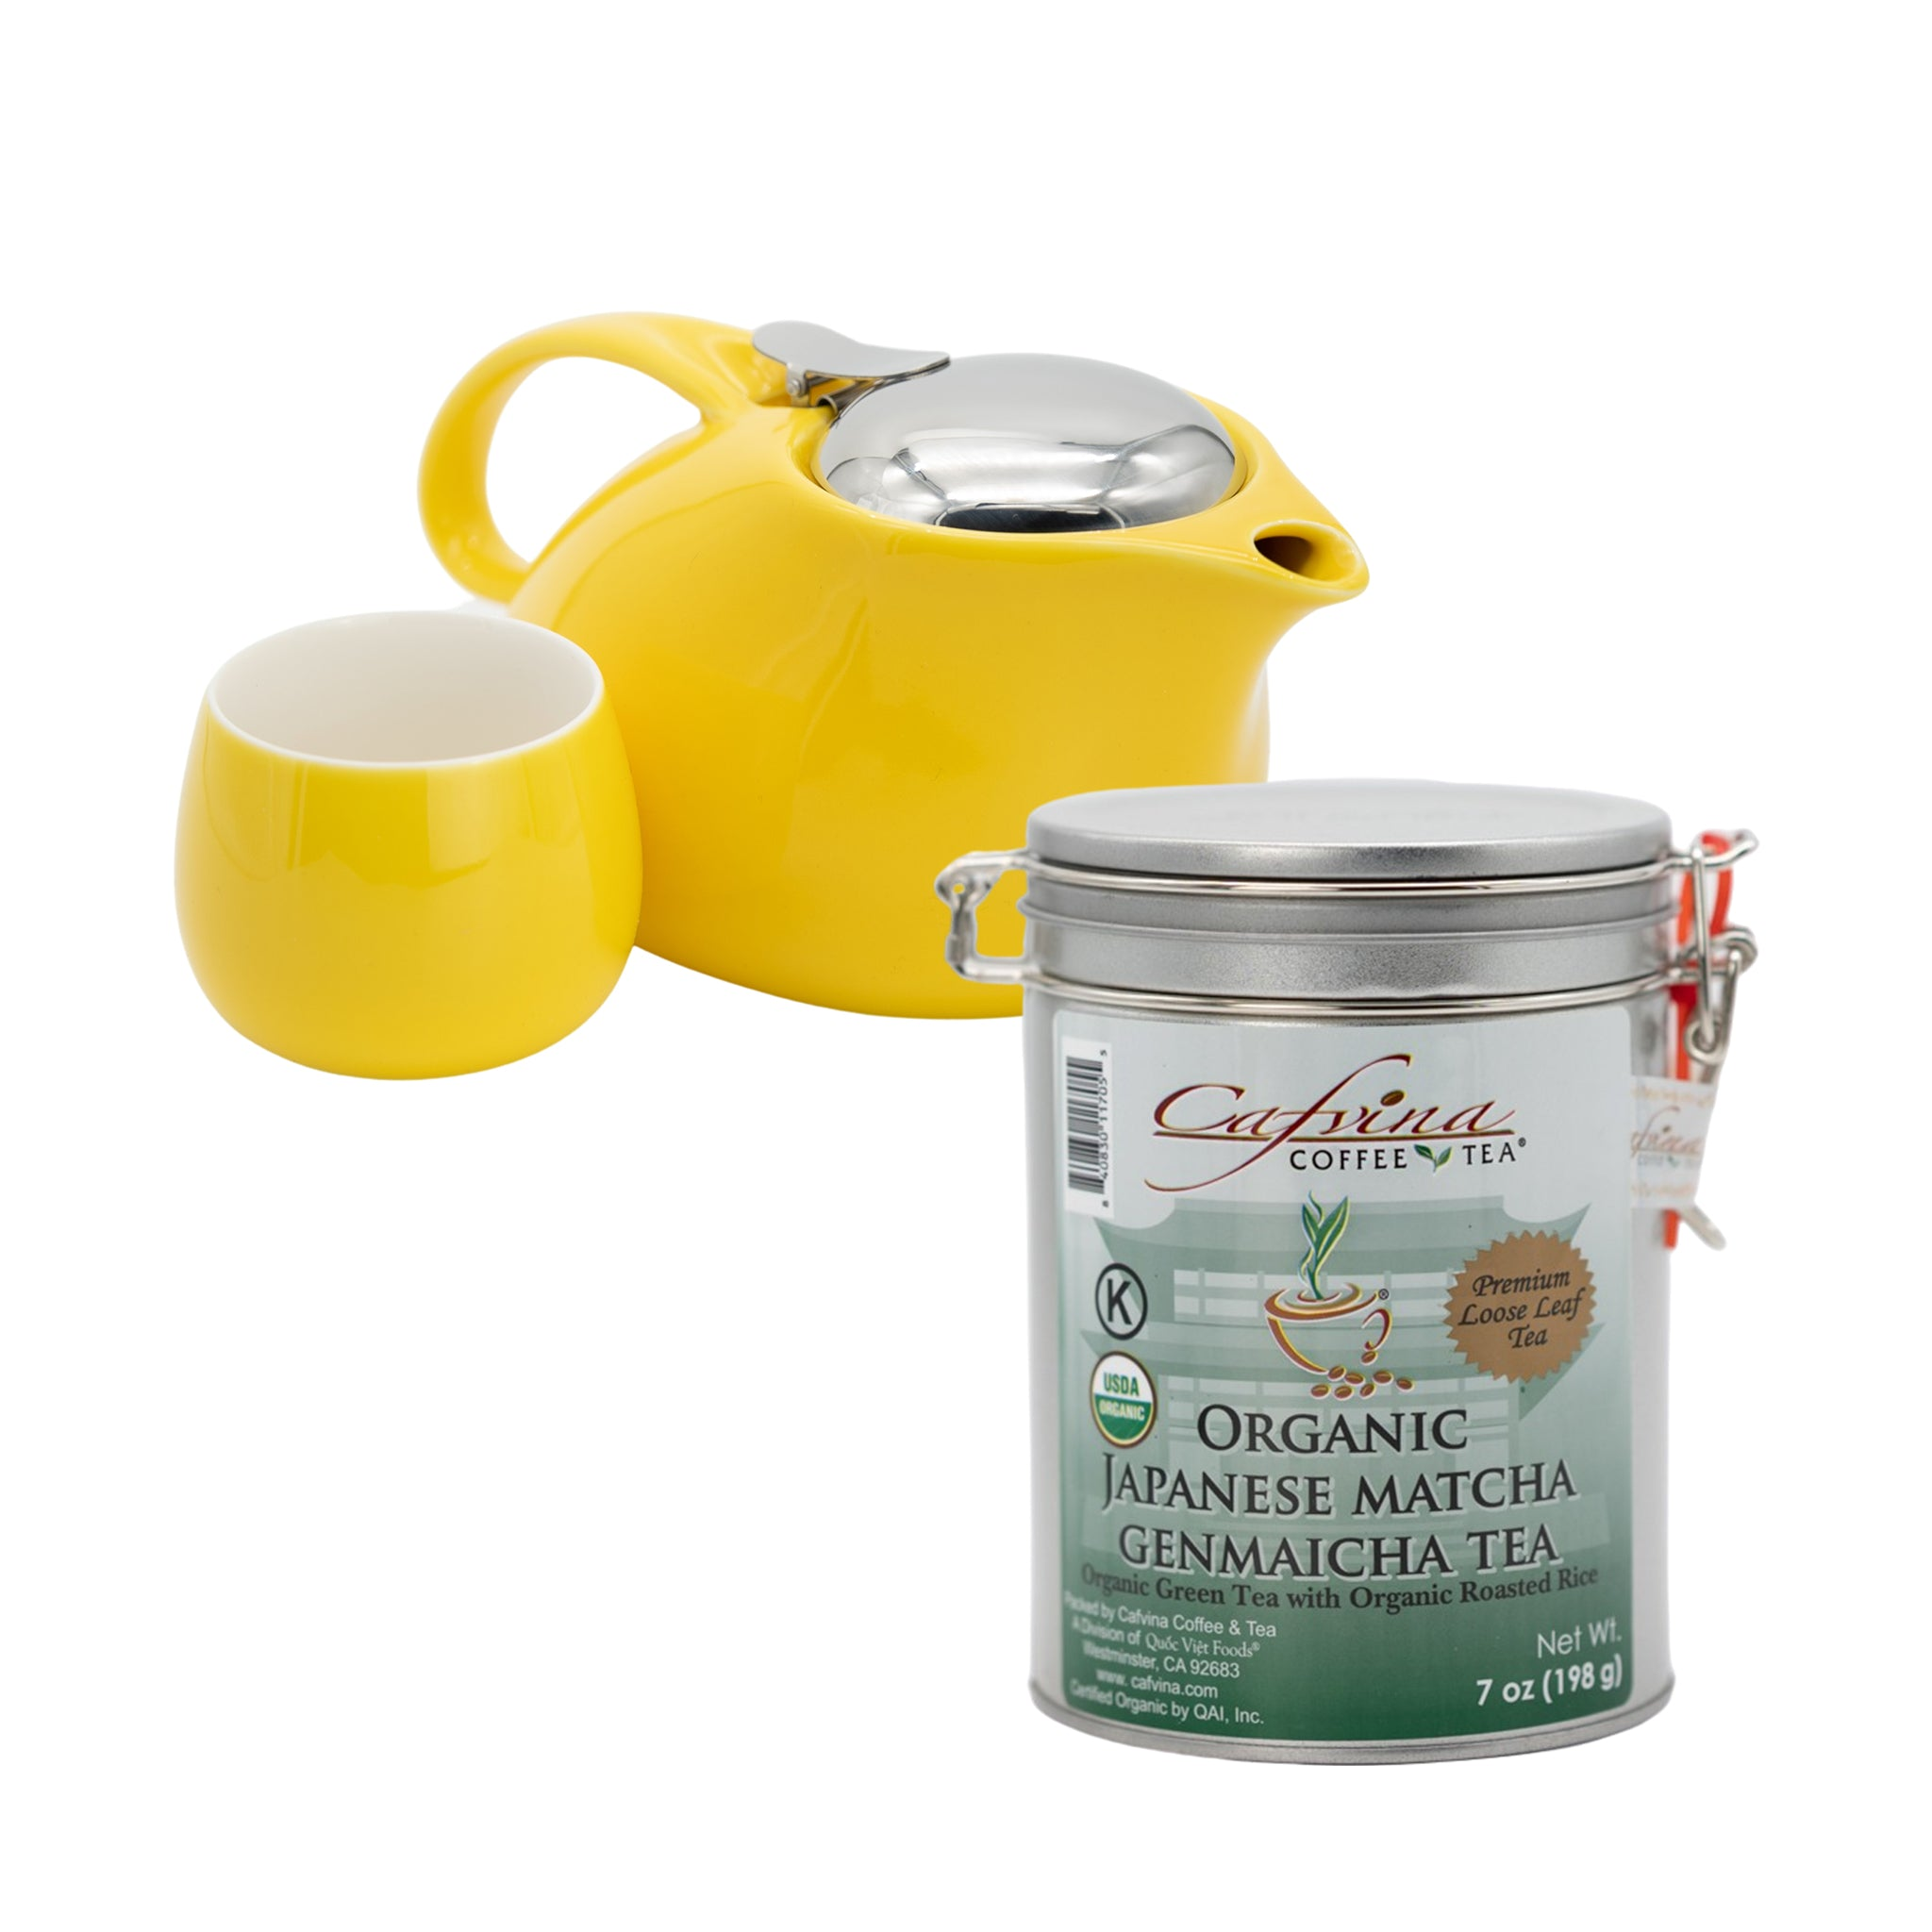 Tea Pot Set (Yellow) with Organic Japanese Matcha Genmaicha Tea Bundle